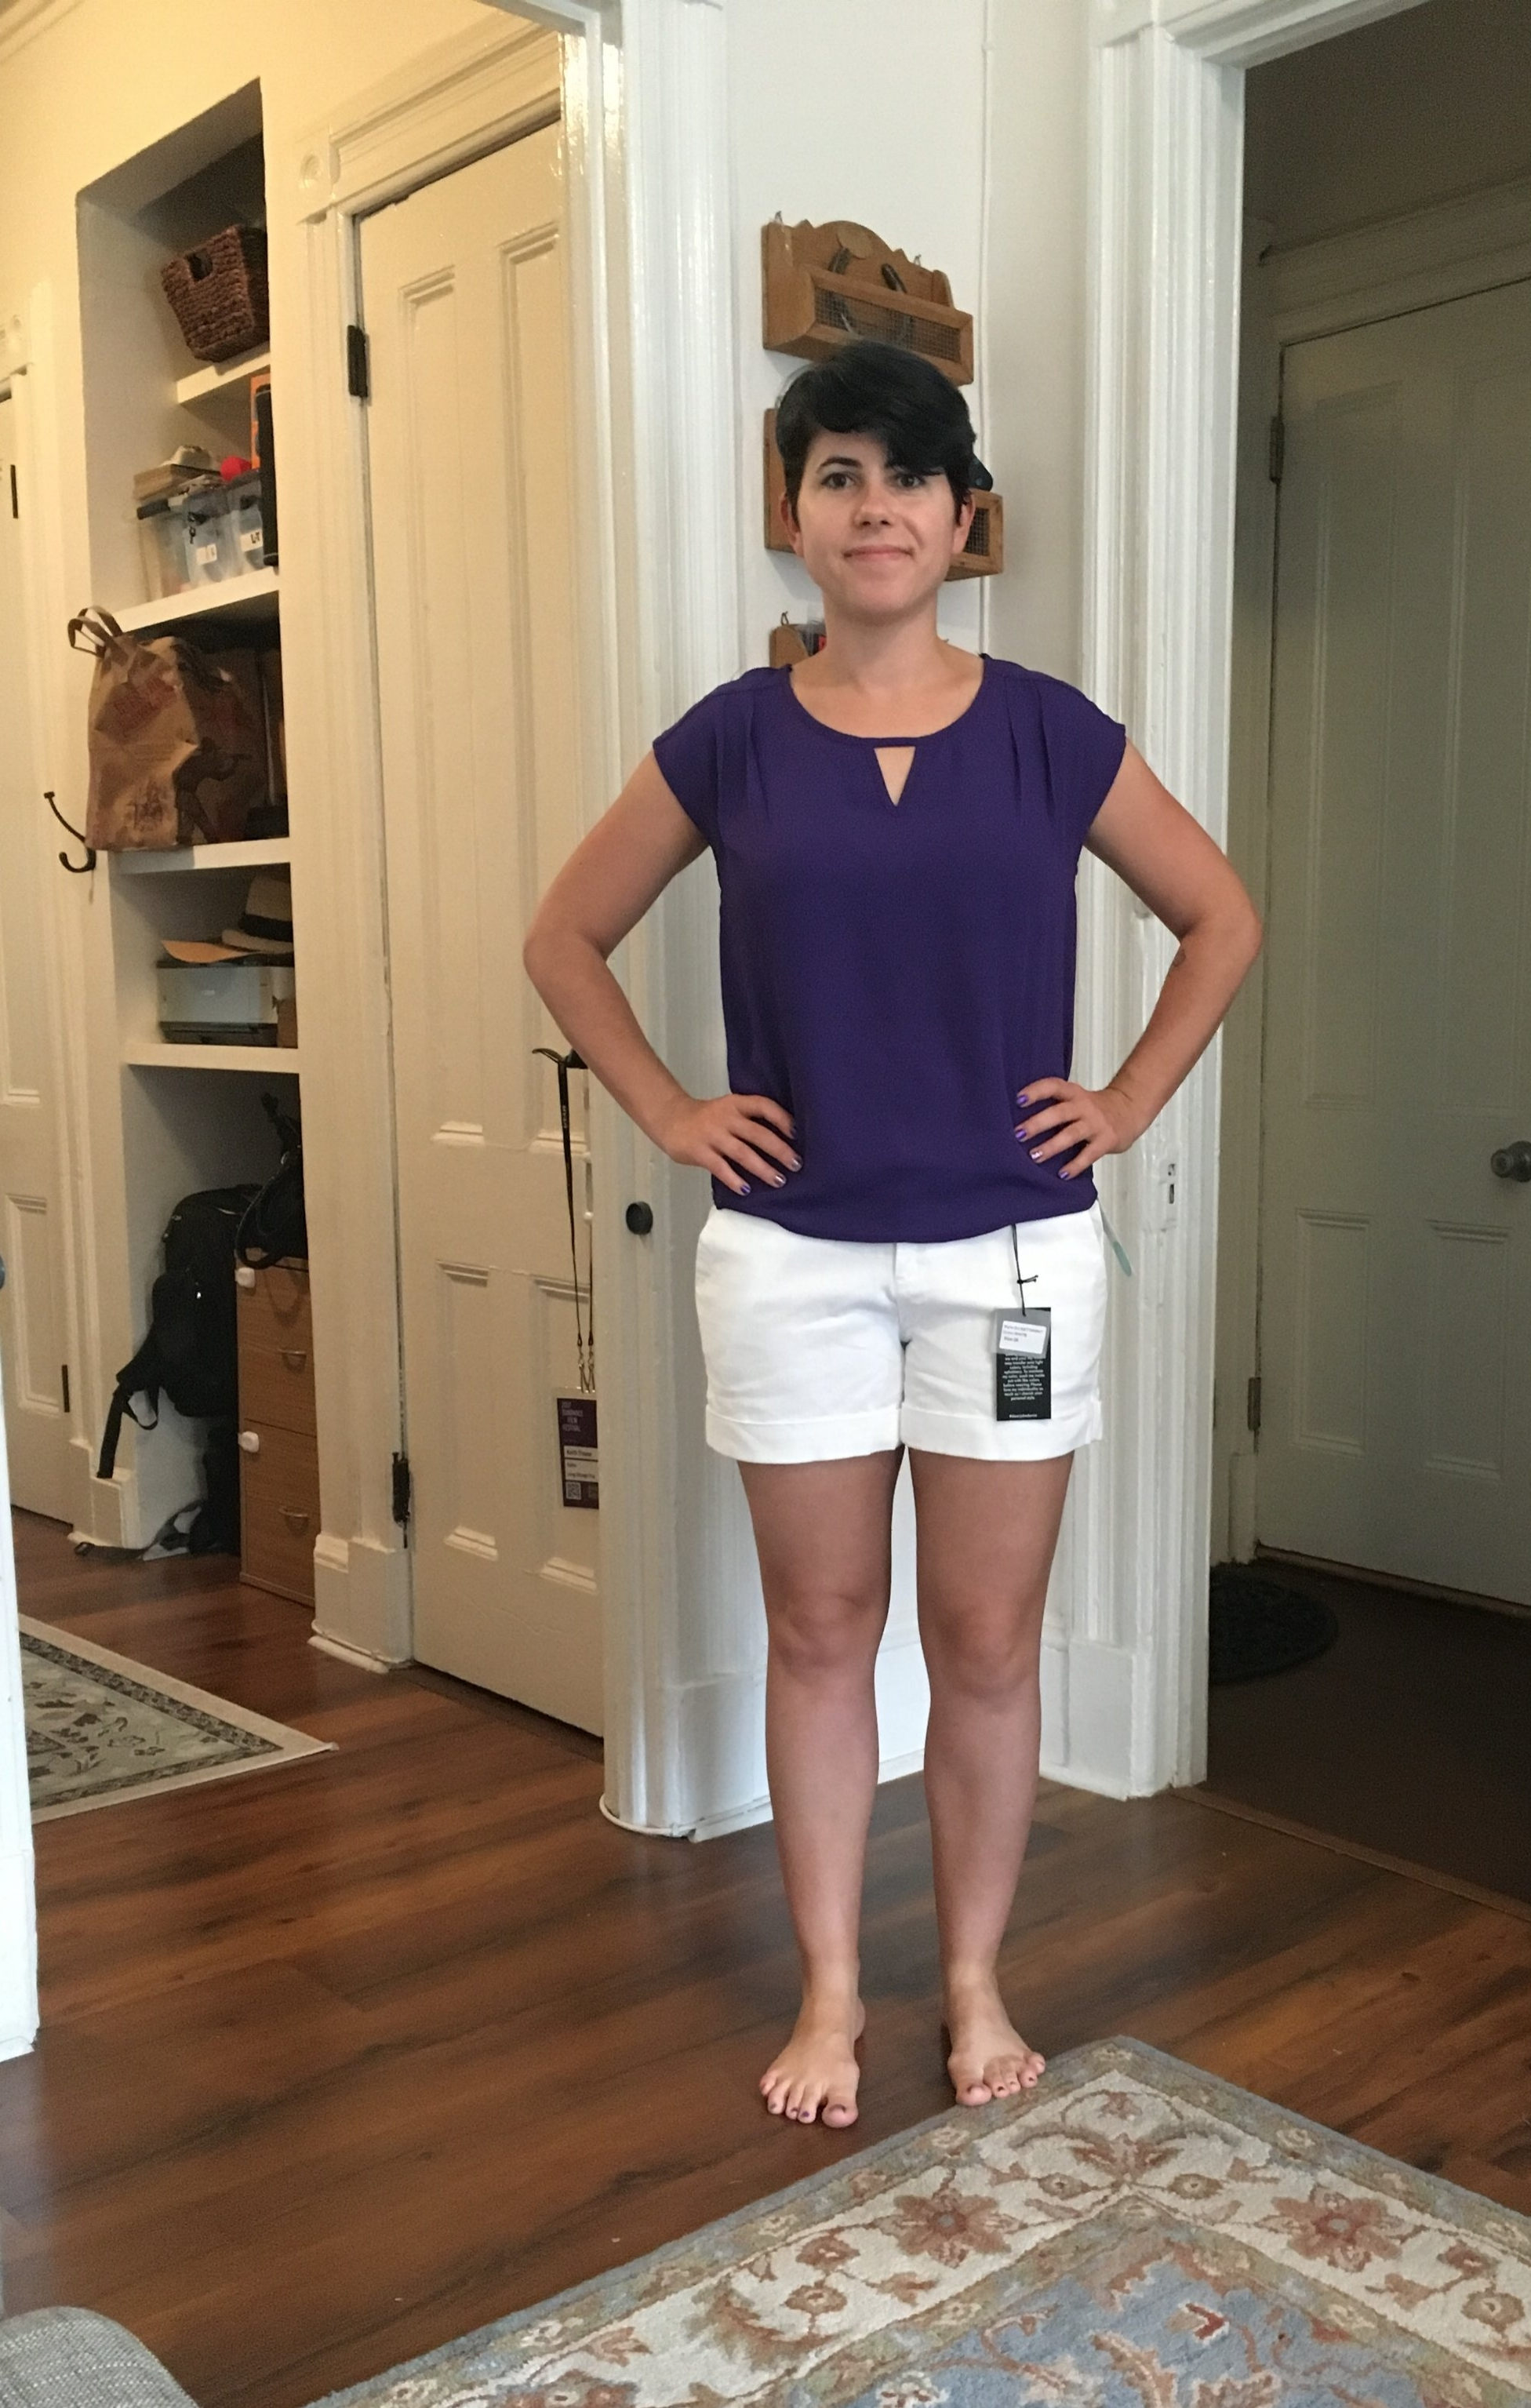 One of my March Stitch Fix pairings - kept the shorts!